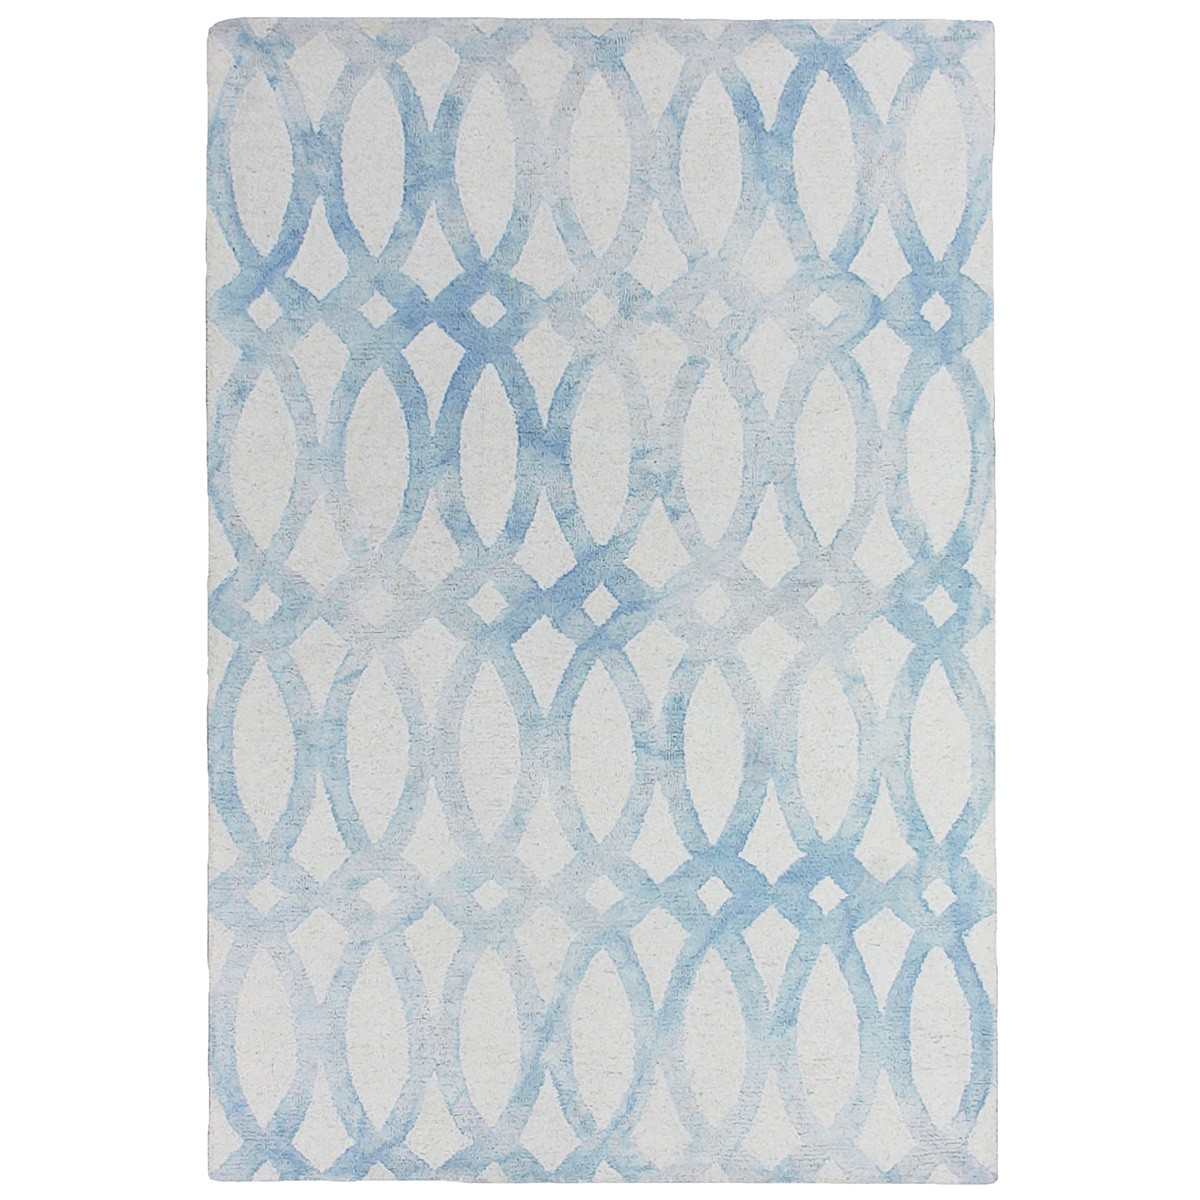 Dip Dye Hand Tufted Wool Rug, 160x230cm, Blue